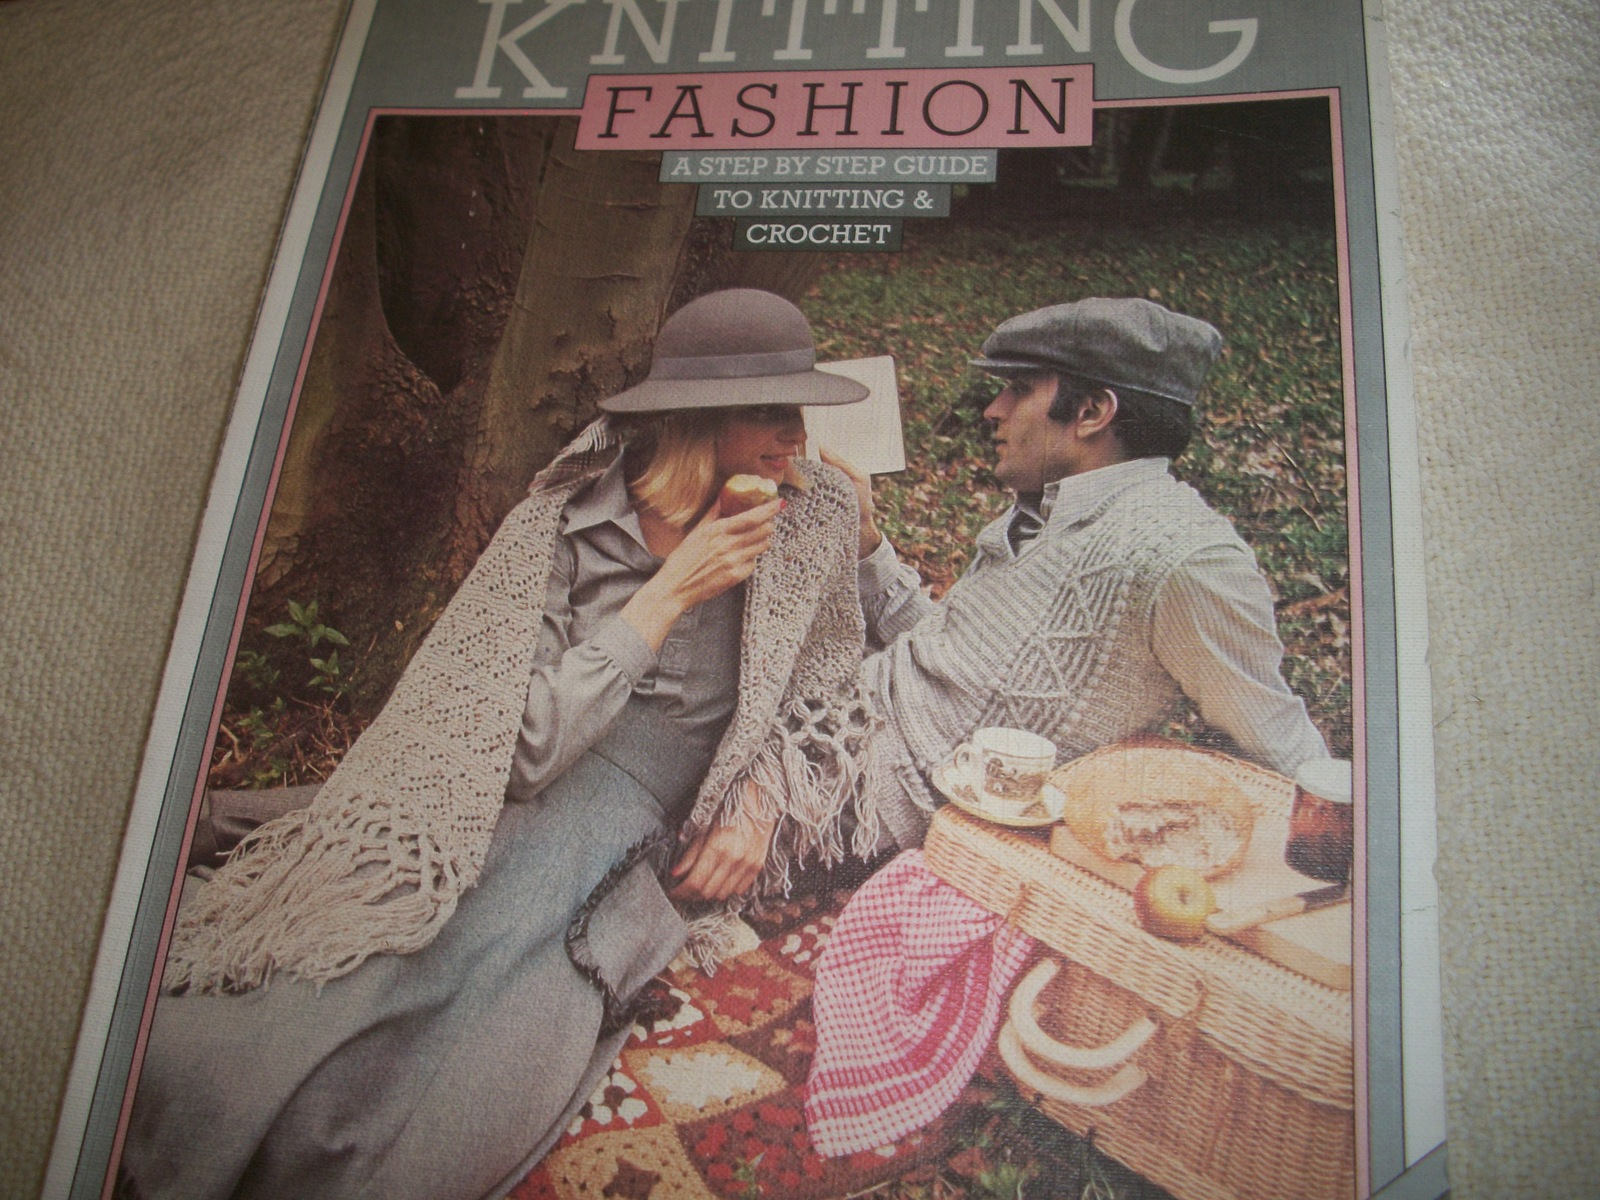 Primary image for Knitting Fashion: A Step By Step Guide To Knitting & Crochet